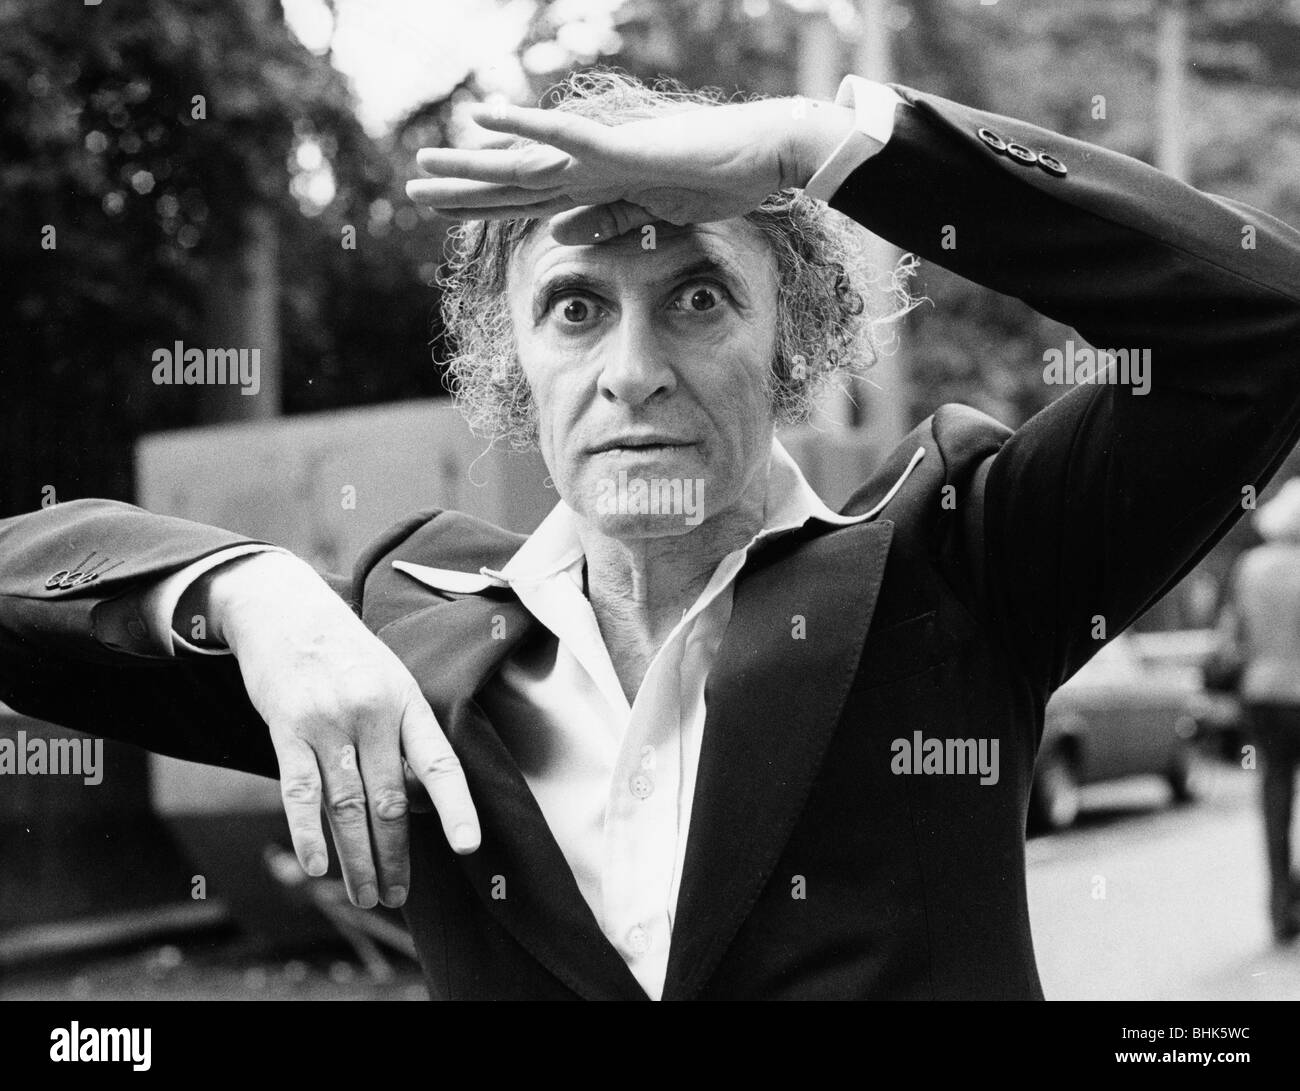 Marcel Marceau (1923-1999), French mime artist. - Stock Image